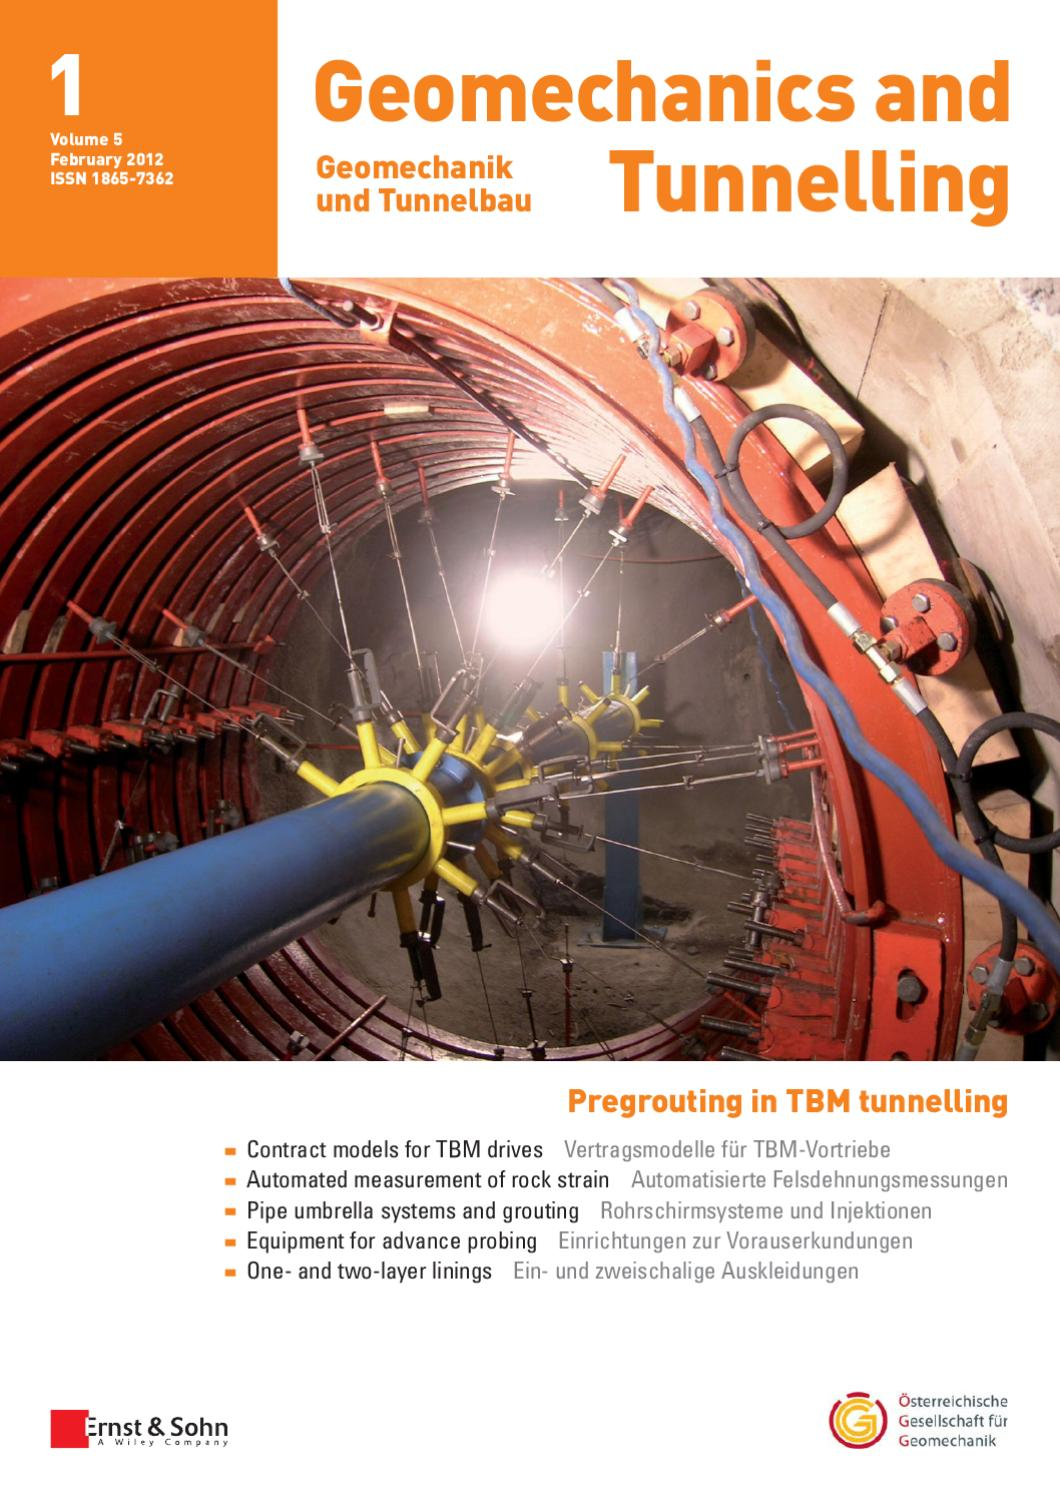 Geomechanics and Tunnelling 01/2012 free sample copy by ...